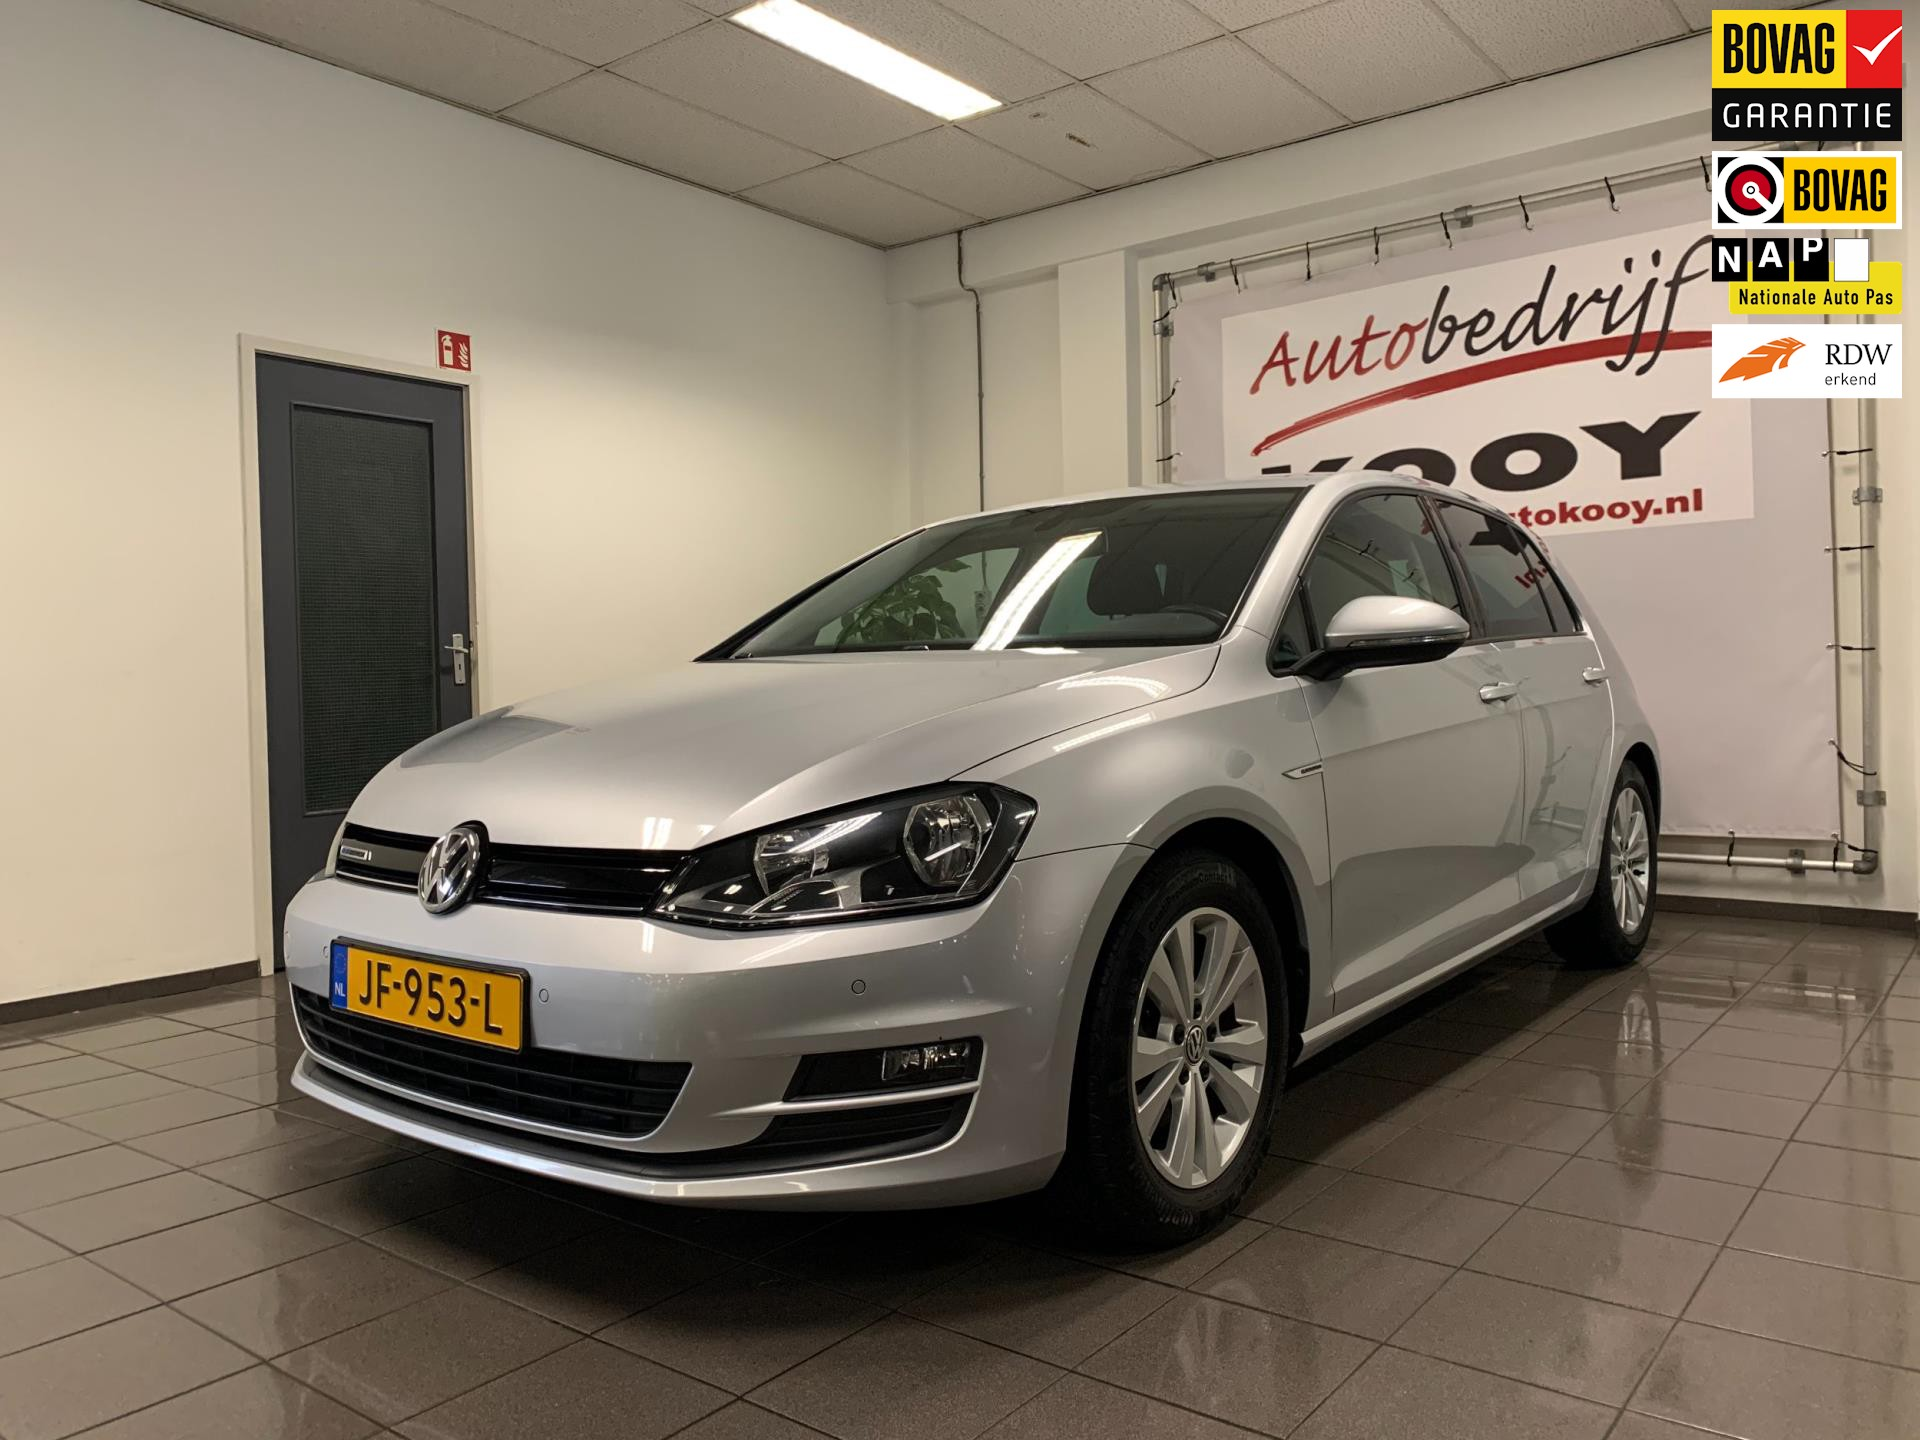 Volkswagen Golf 1.0 TSI Business Edition Connected * Navigatie / Camera / Trekhaak / NL Auto *